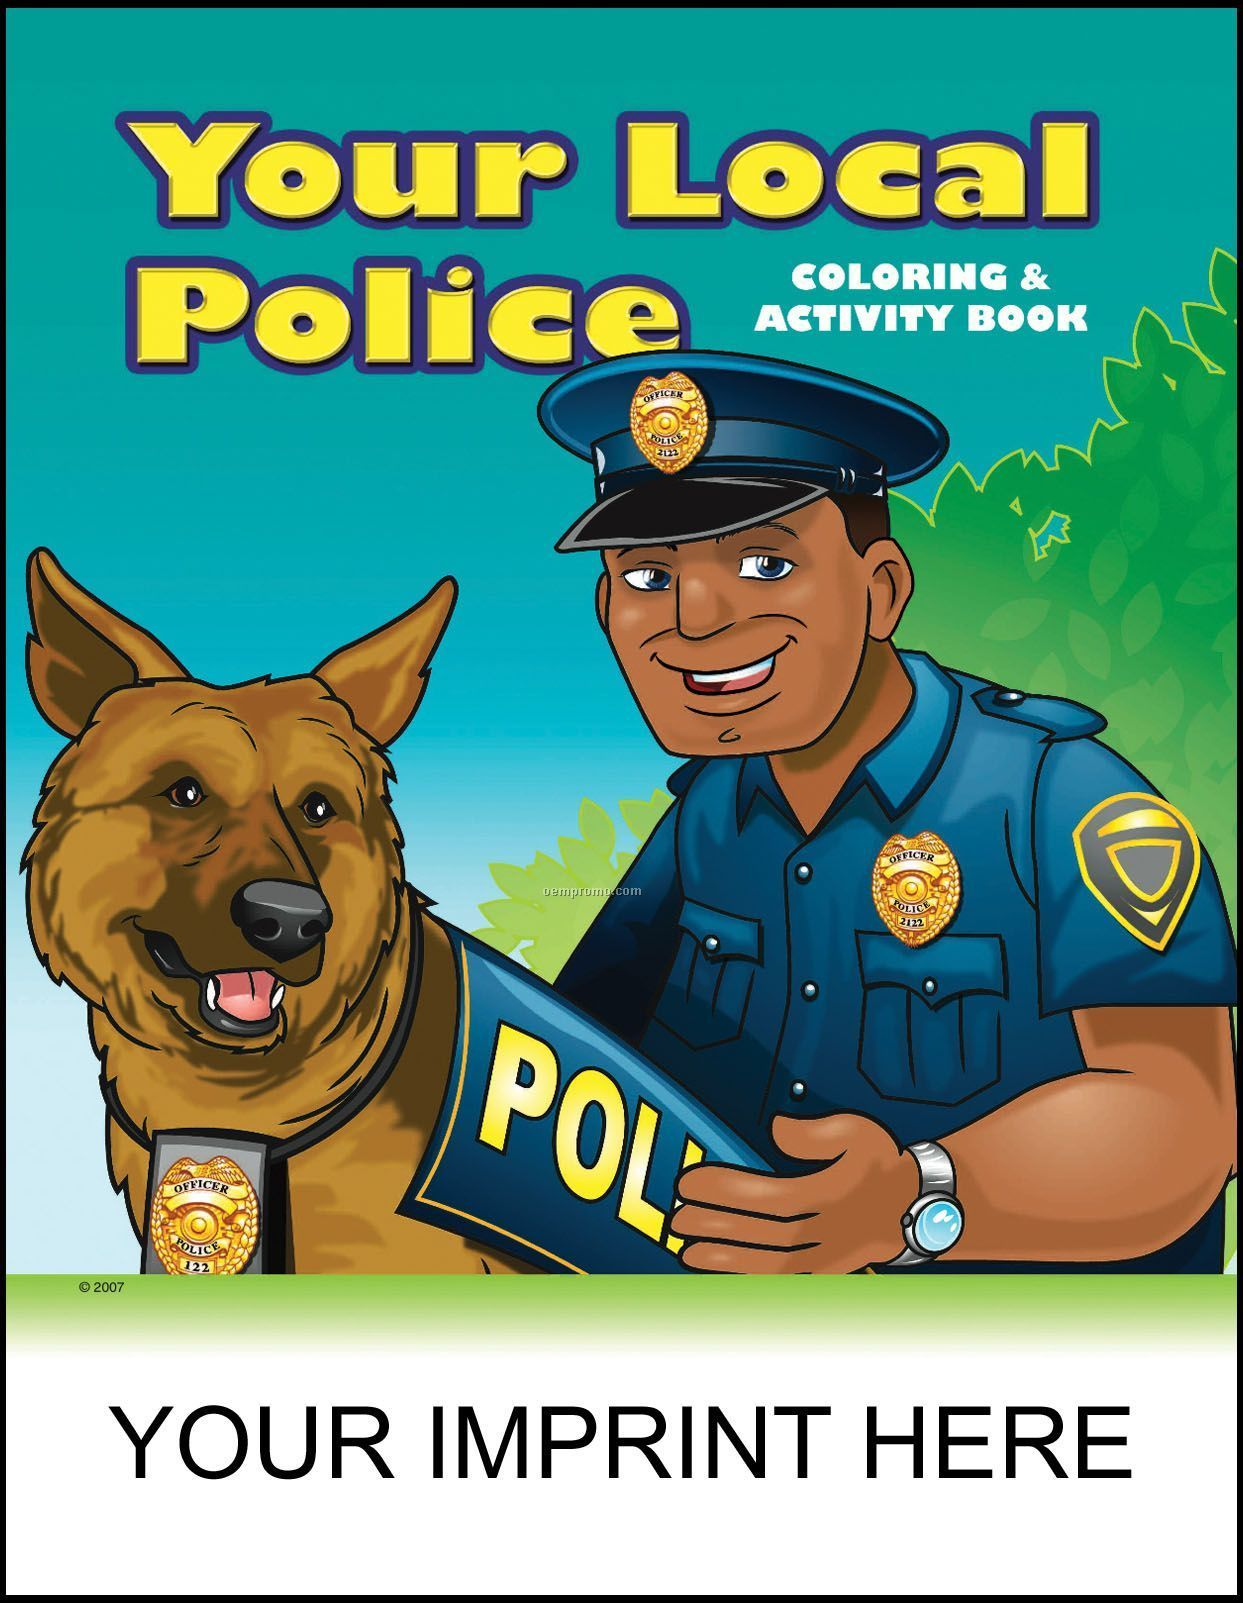 Your Local Police Coloring & Activity Book